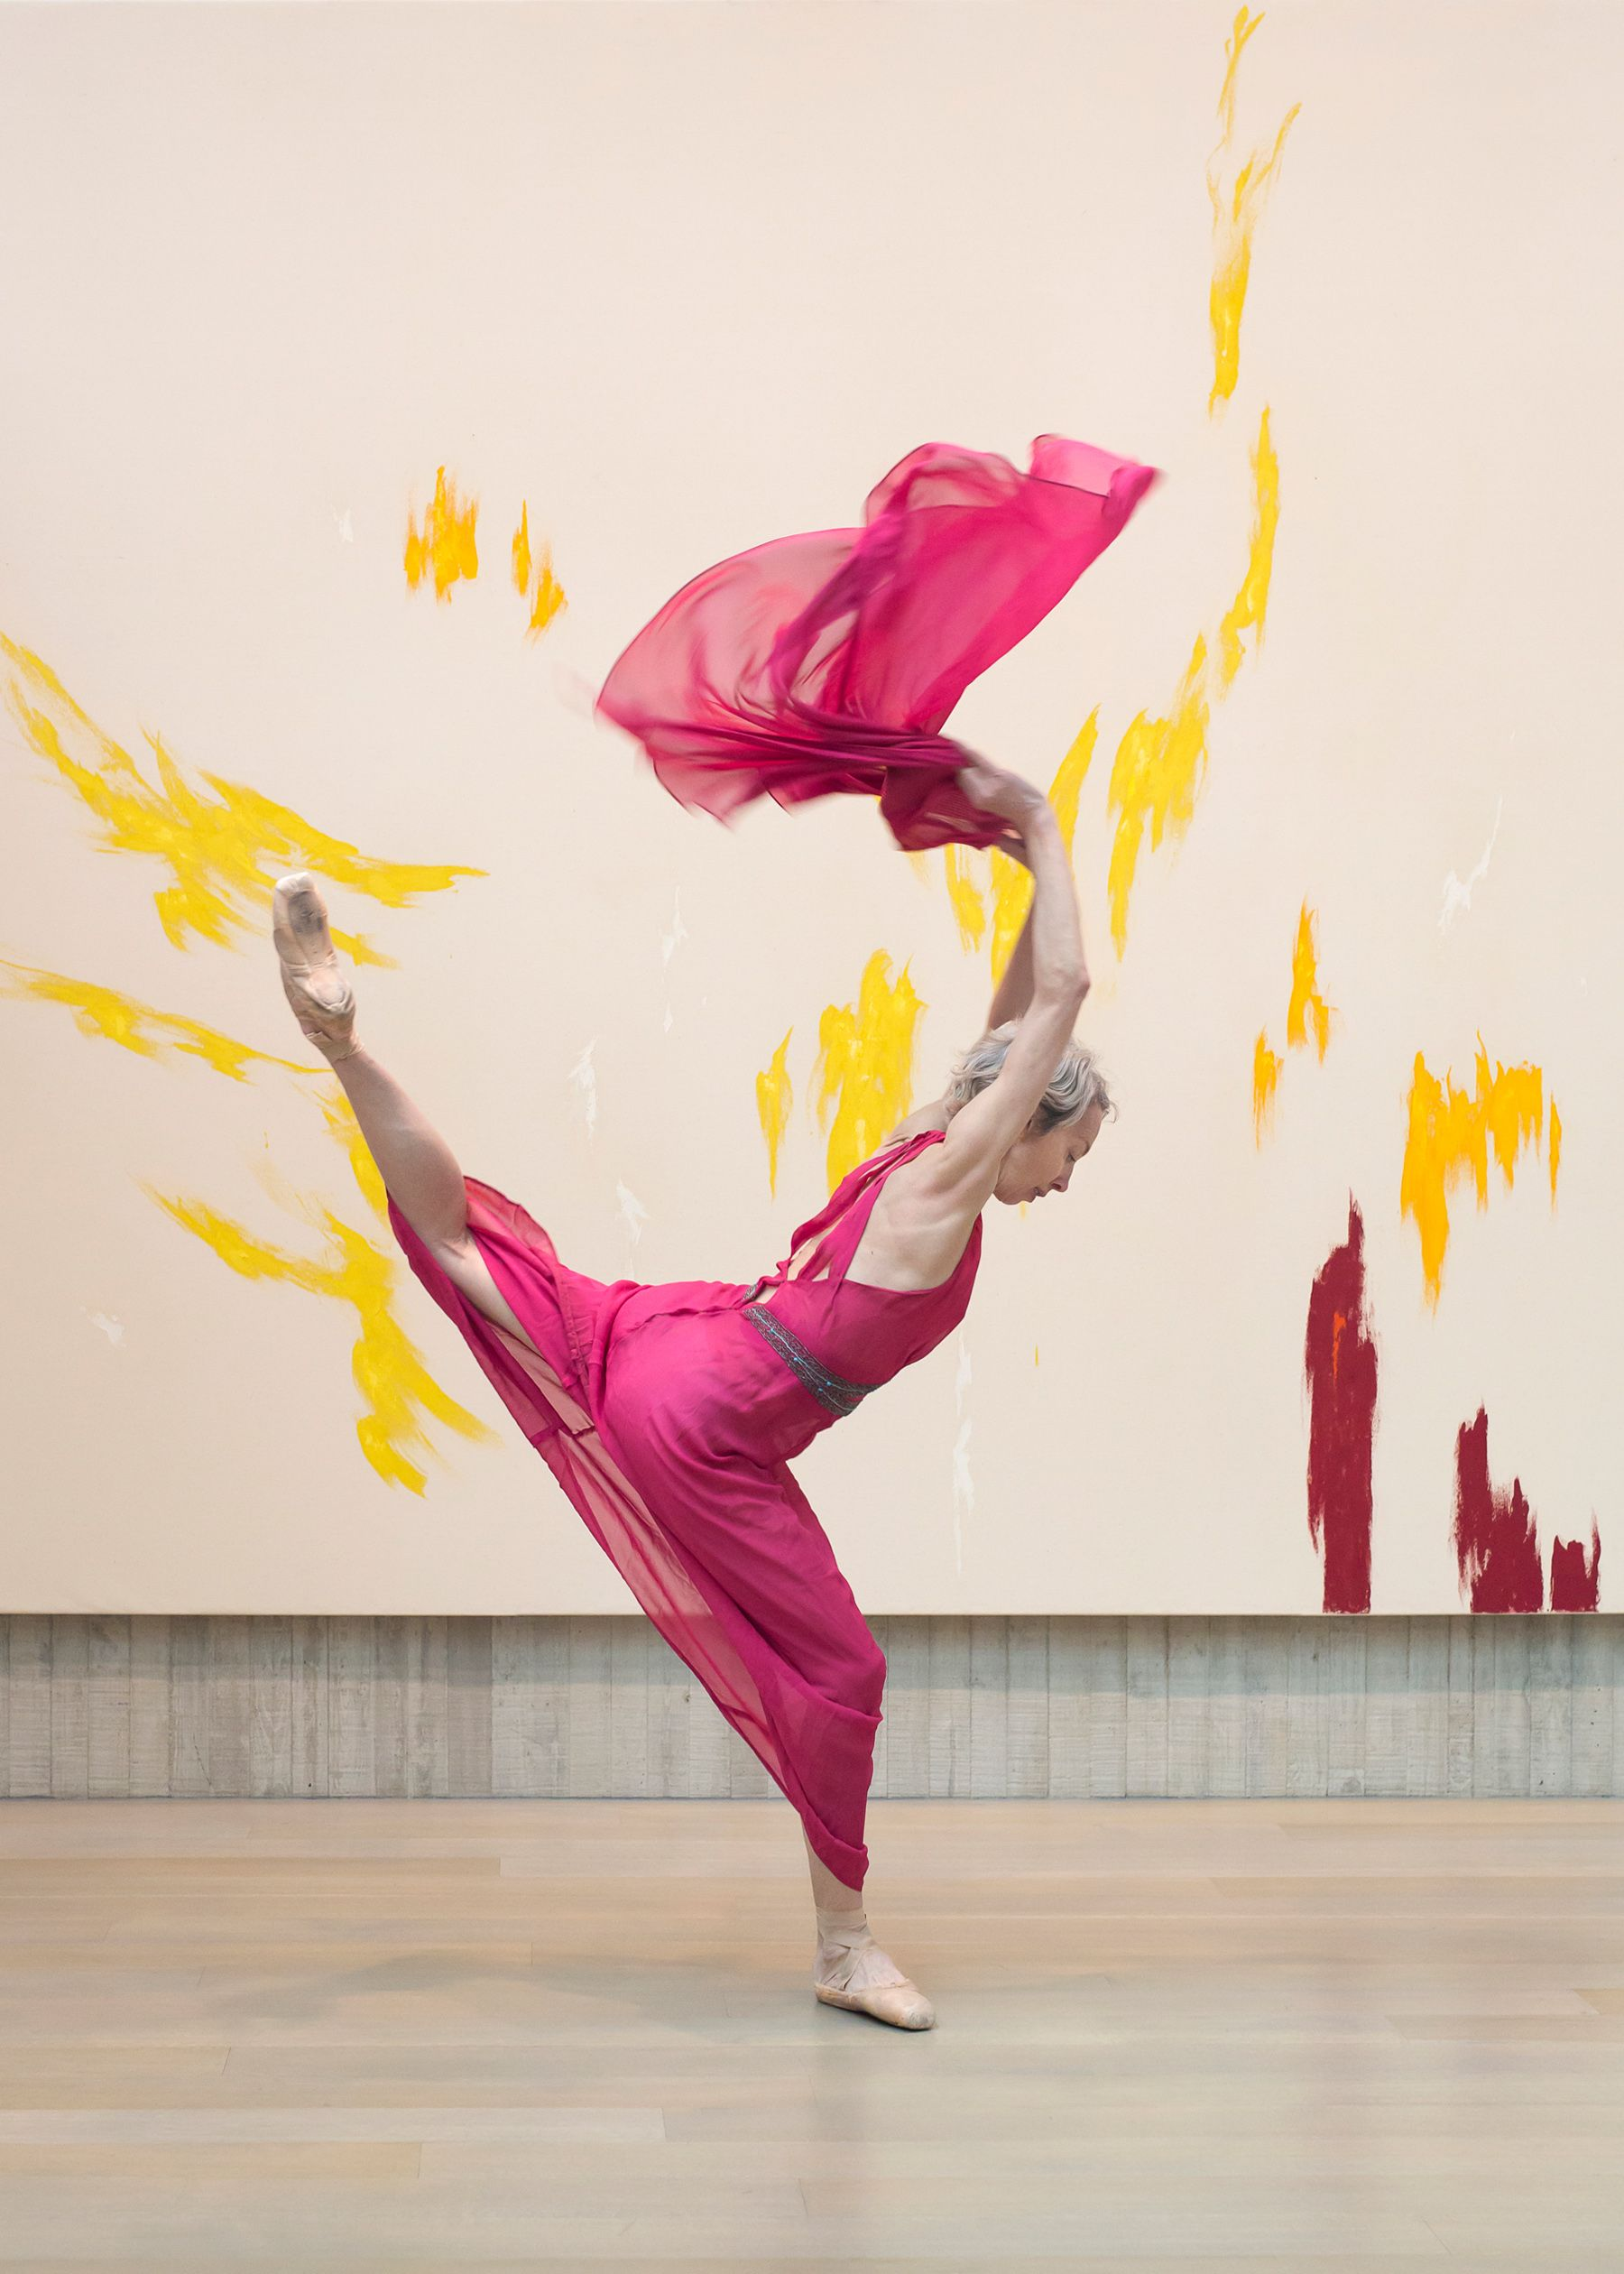 Moving Through Still With Images Dance Photography Studio Portraits Abstract Expressionist Art